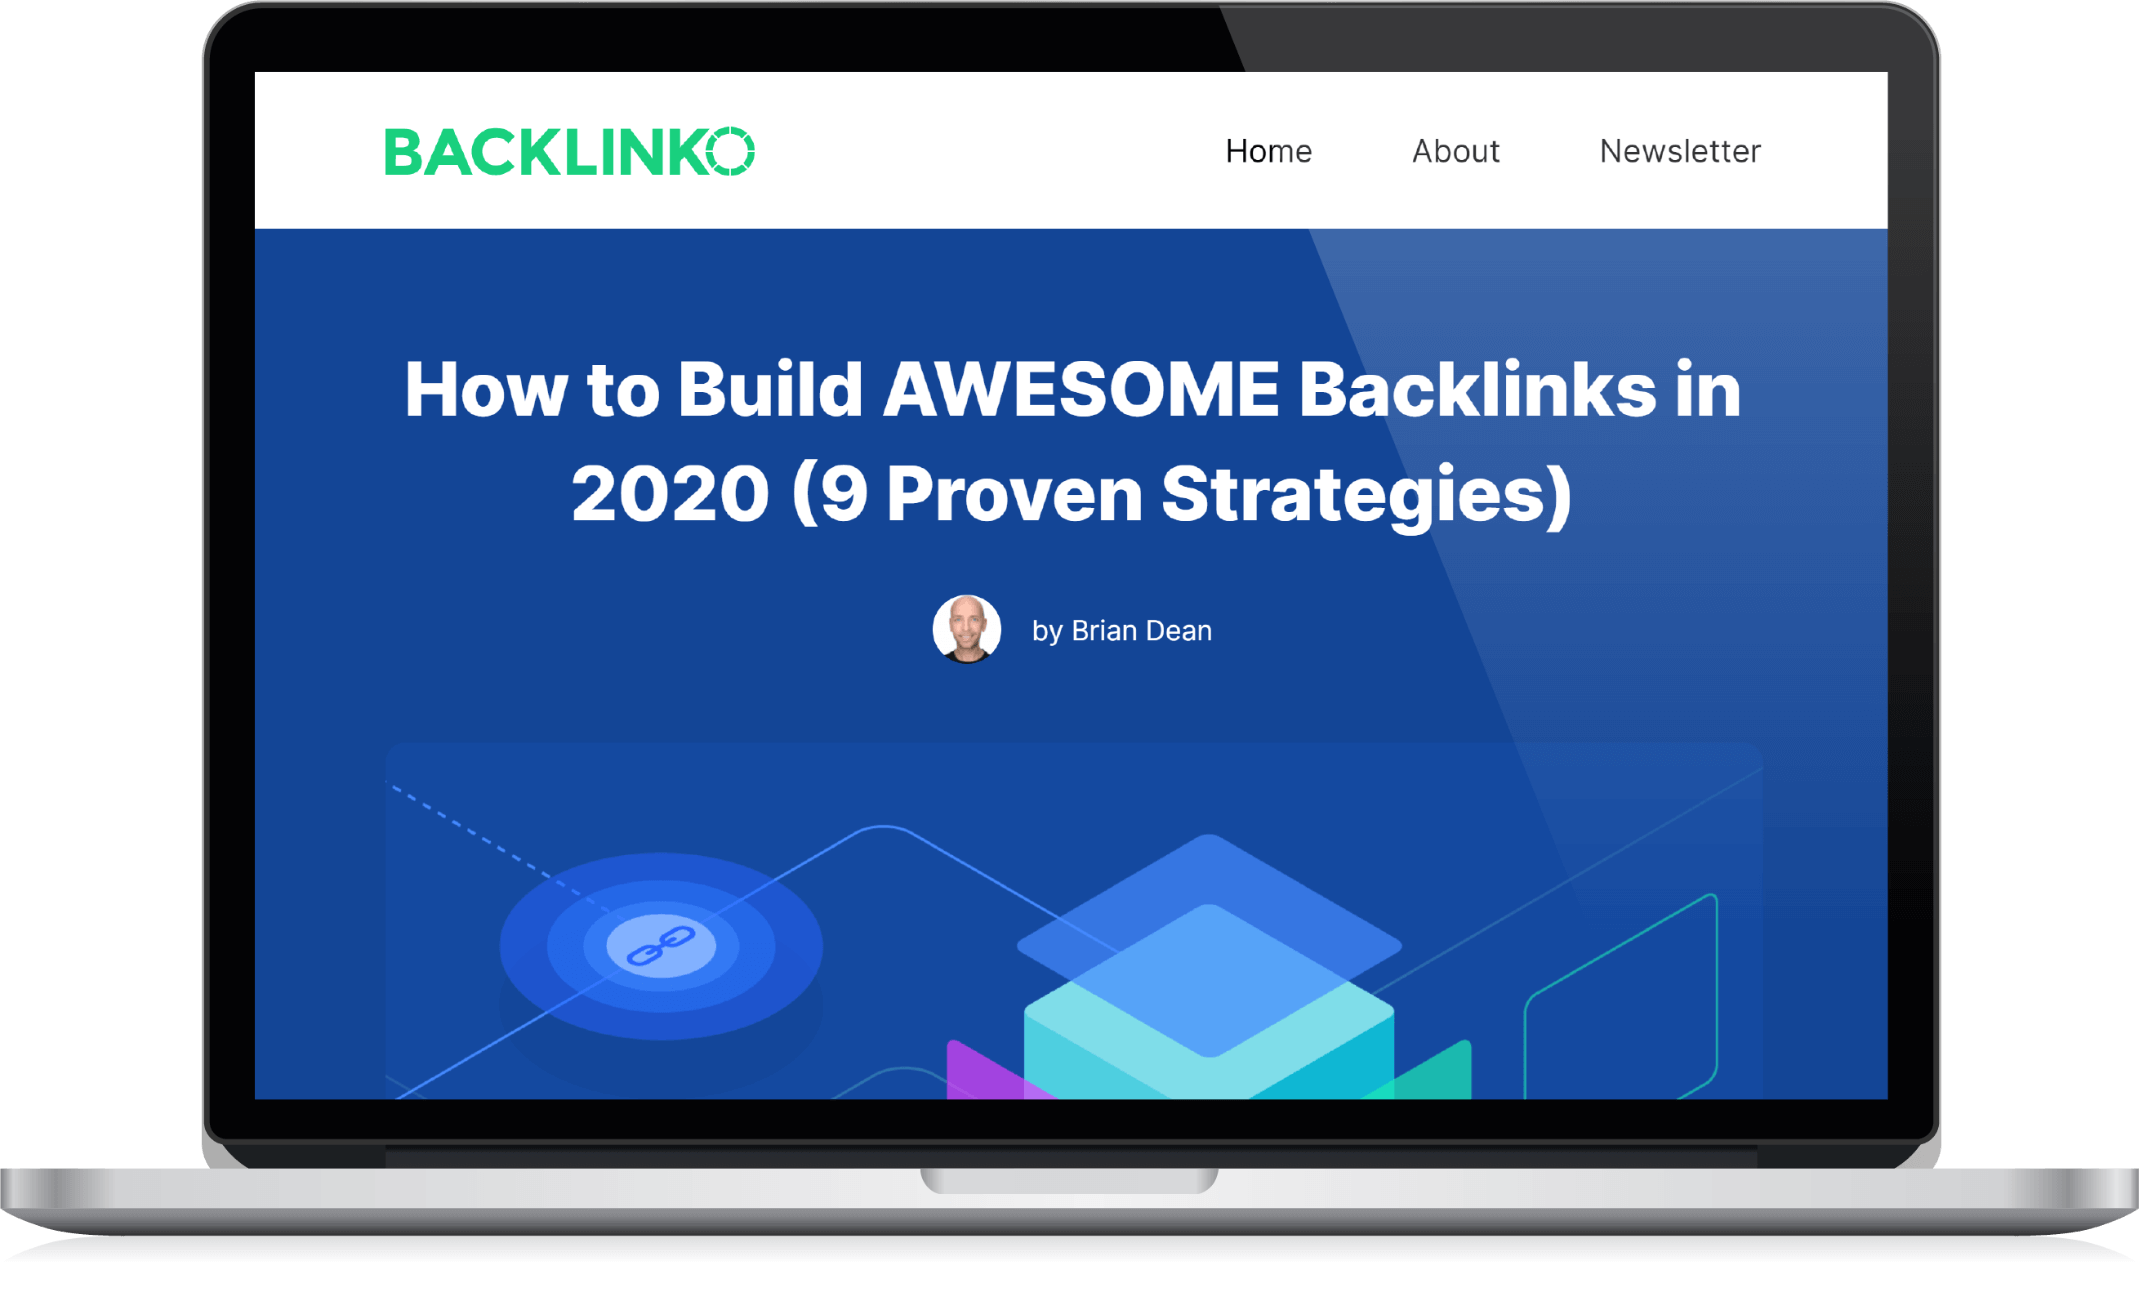 How to Build AWESOME Backlinks (9 Proven Strategies)